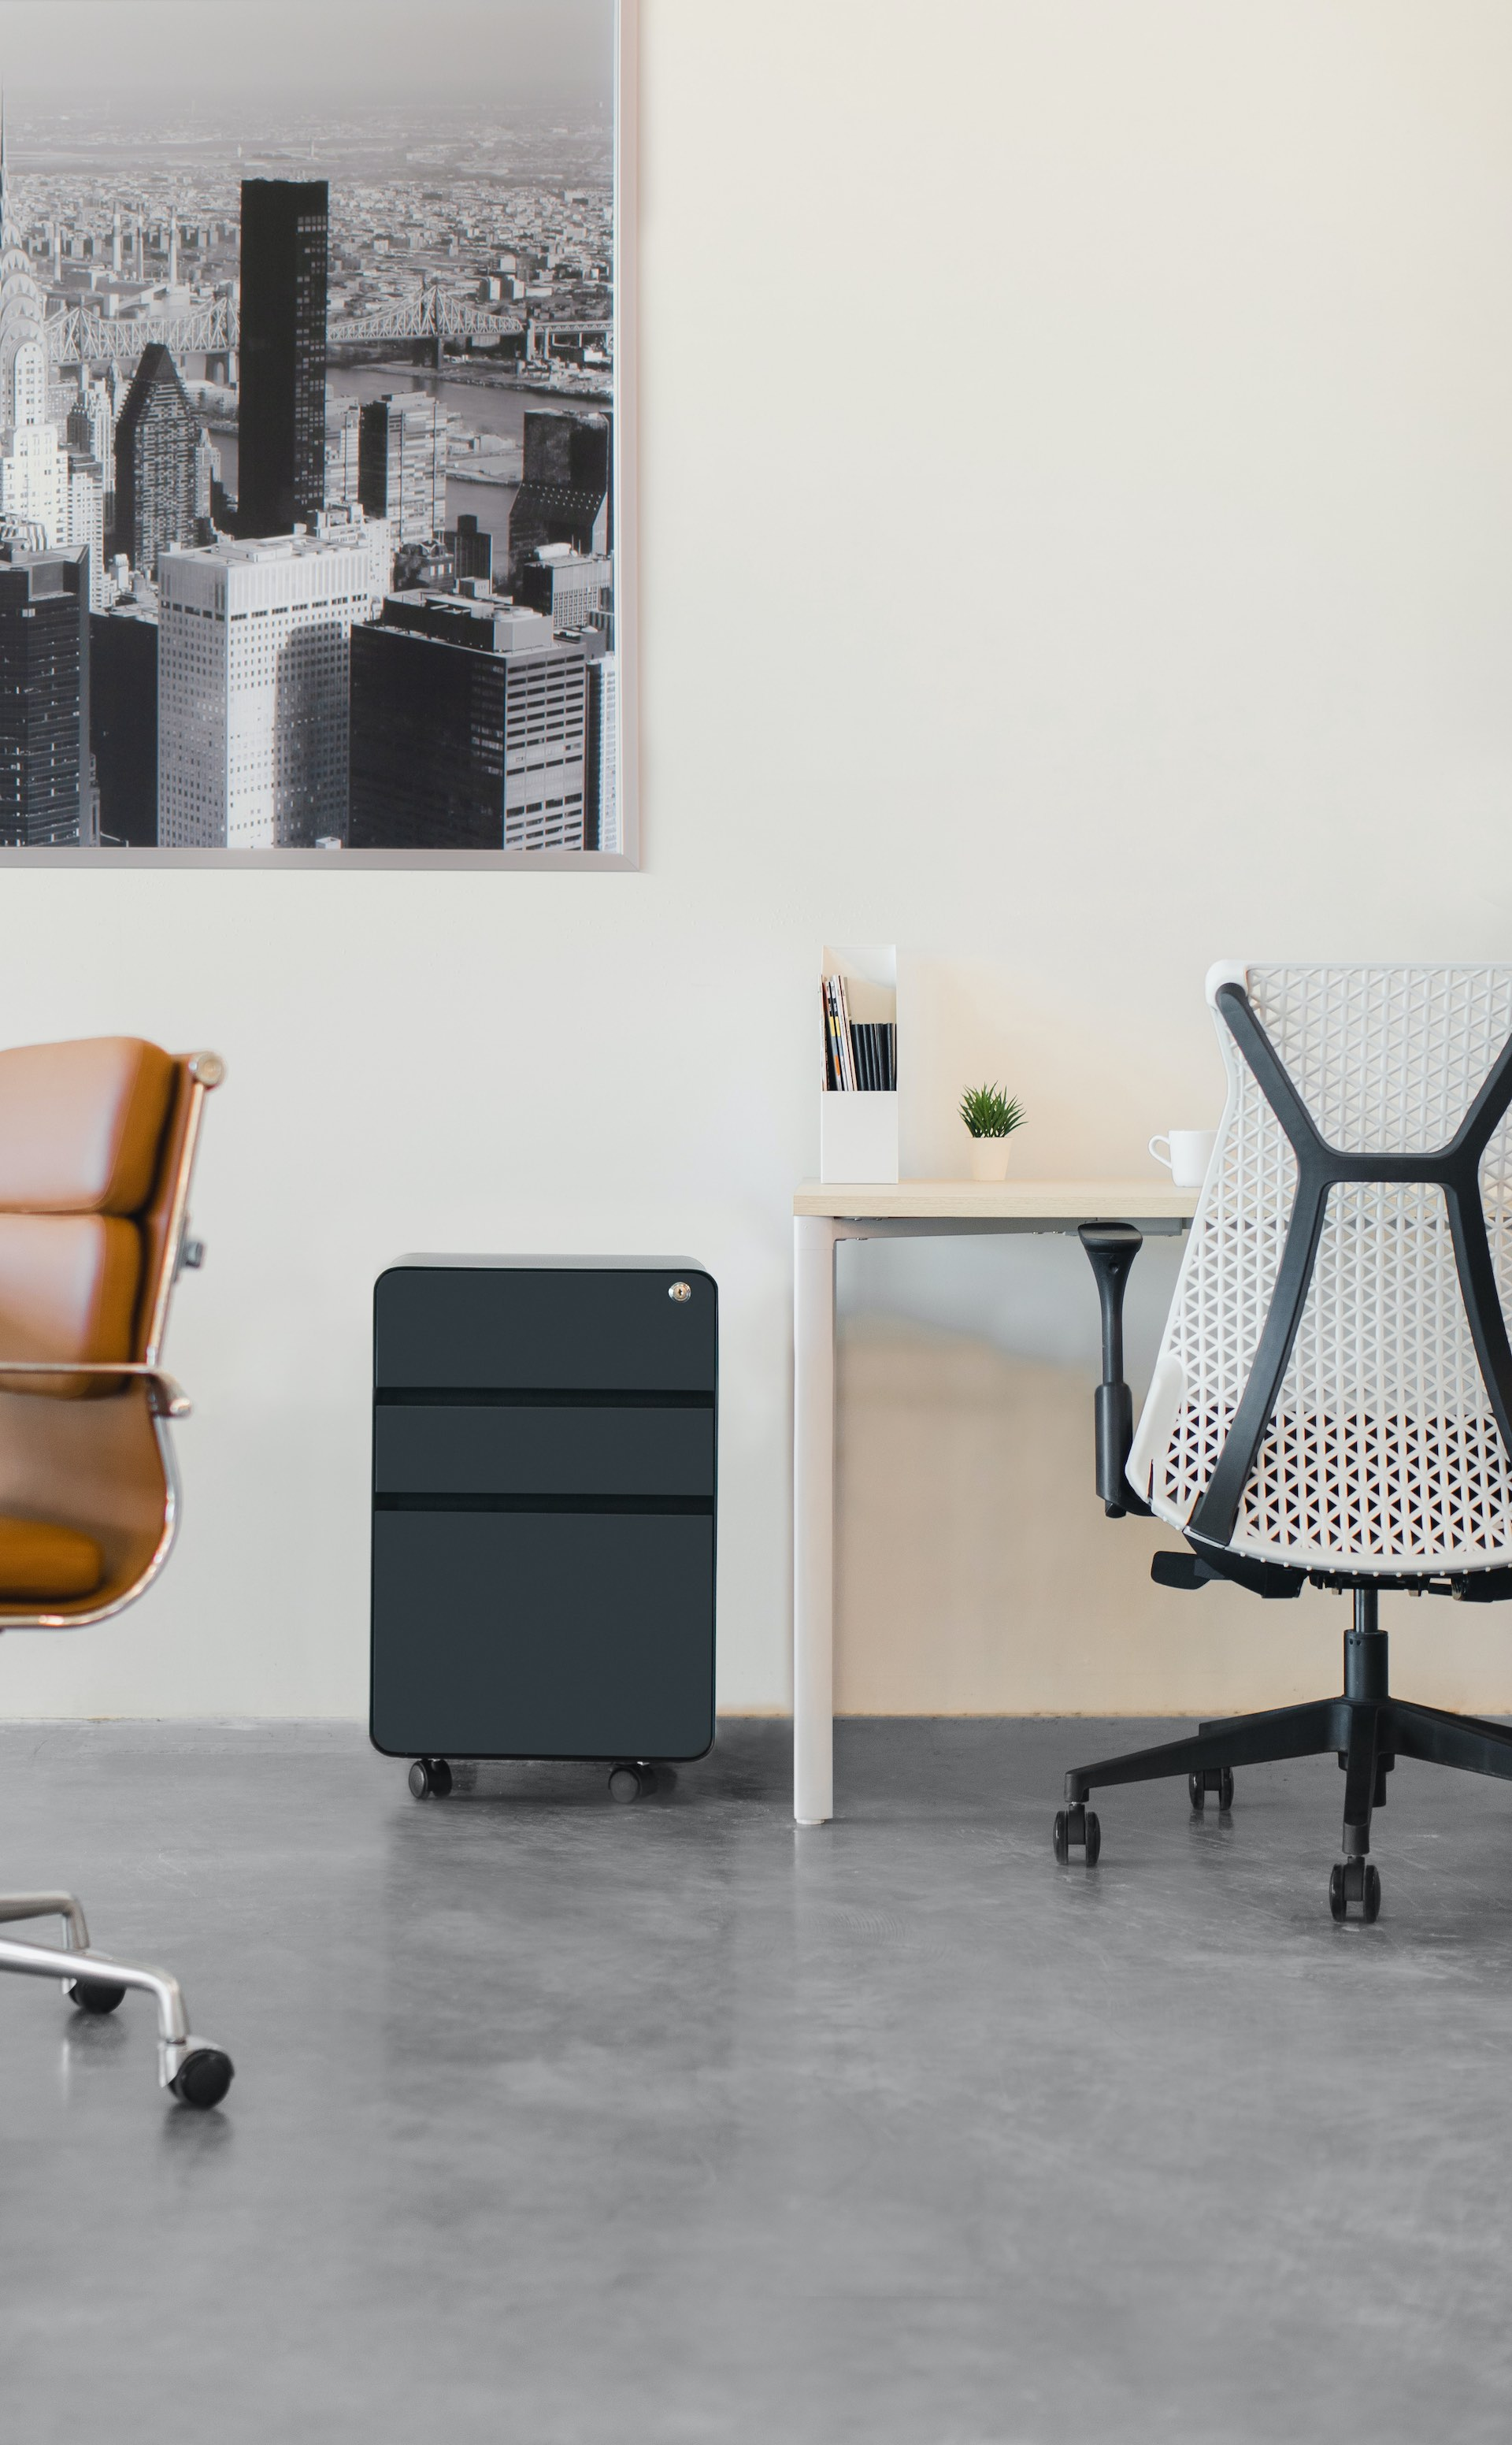 An extremely modern personal workspace. There are concrete floors and high-end office furniture with leather and wood.